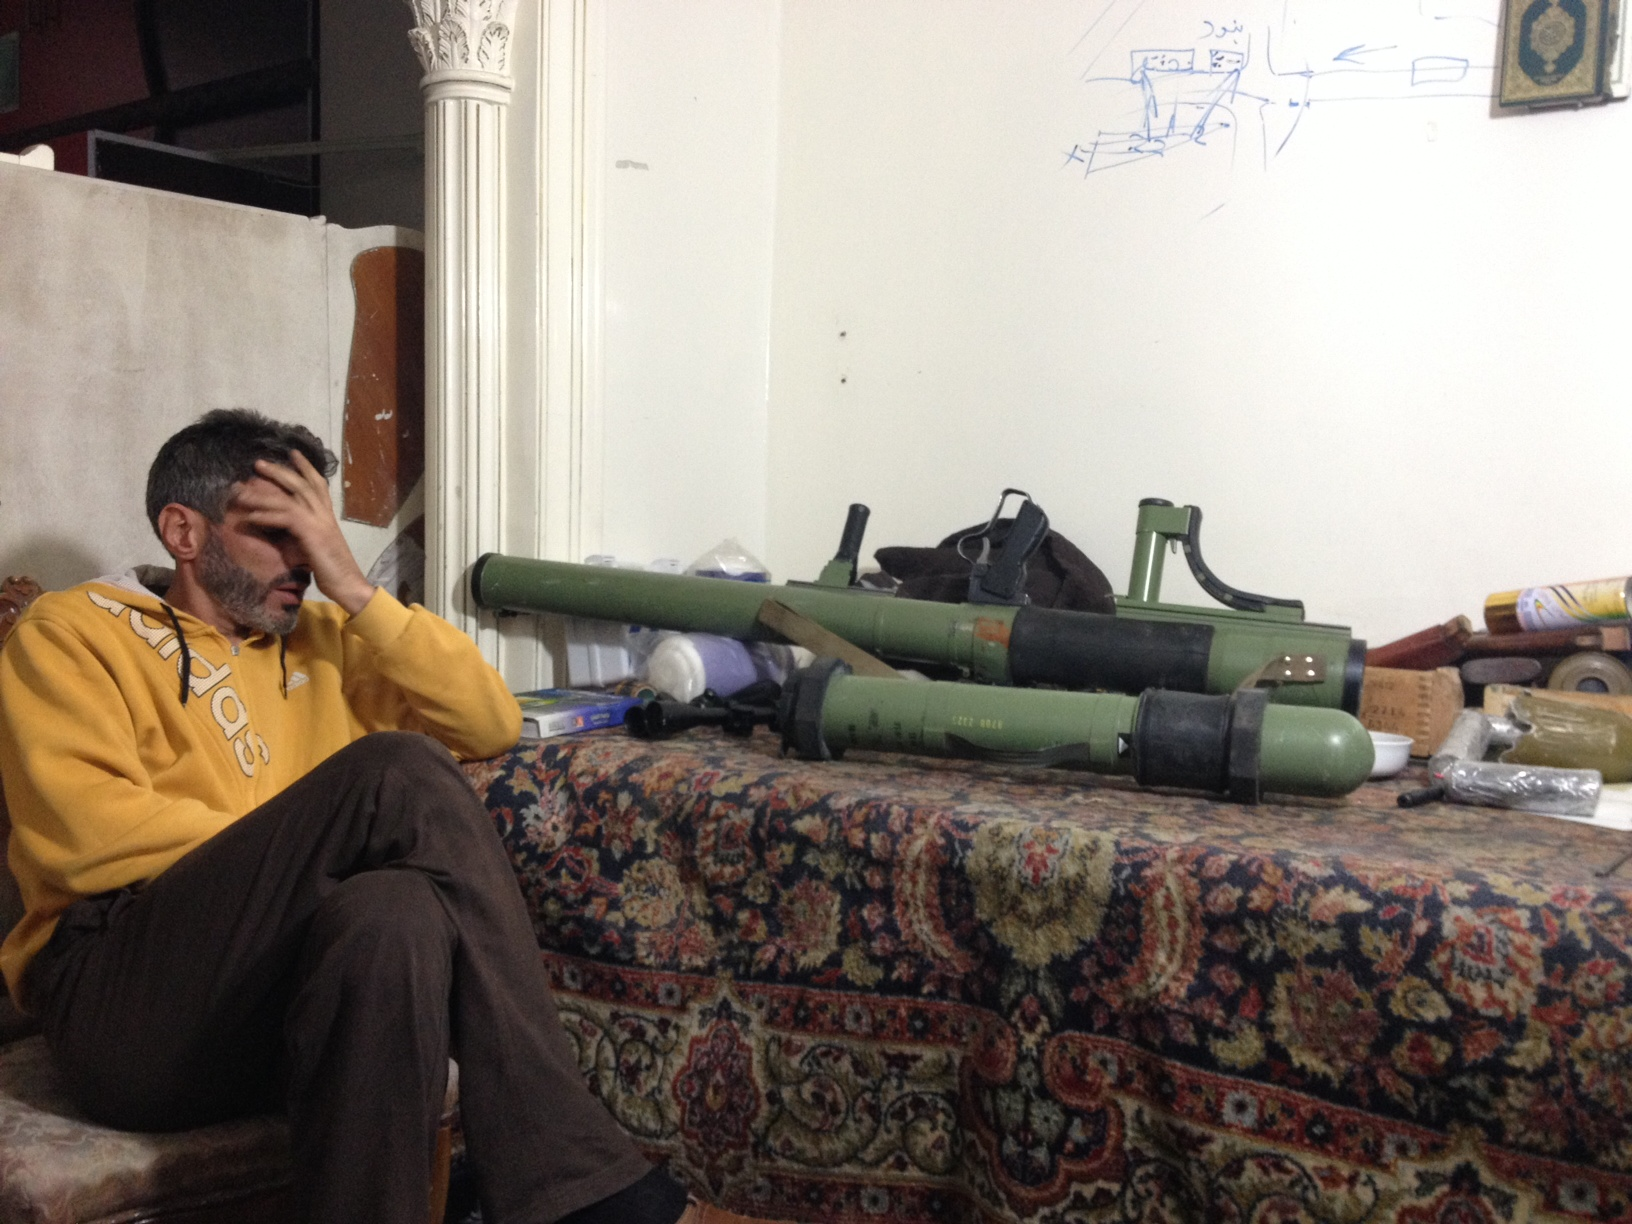 New anti-Tank missiles acquired by secular opposition elements. They claim to have acquired 10 very recently.